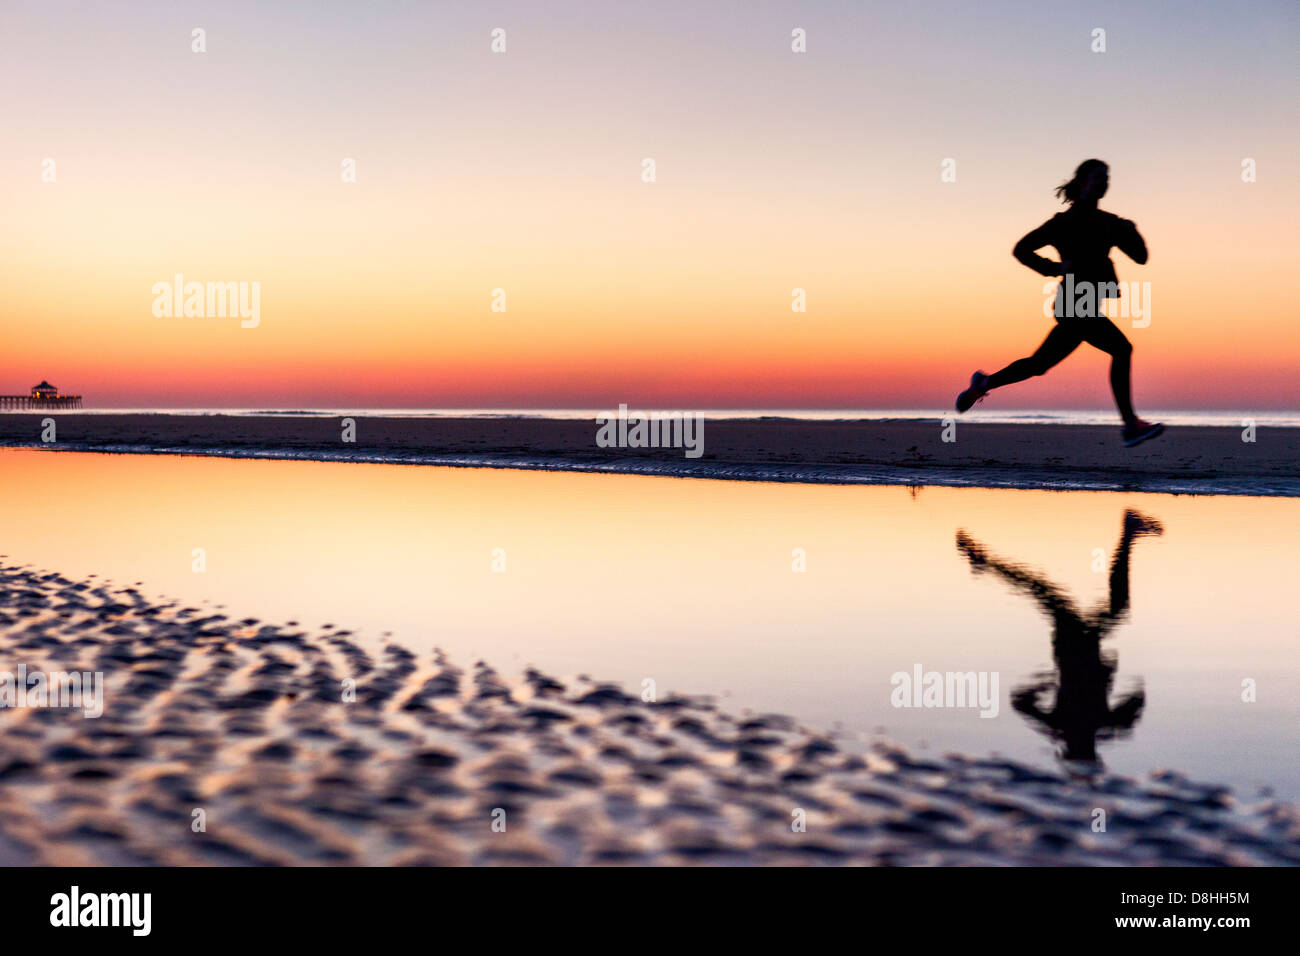 Female jogger at beach Photo Stock